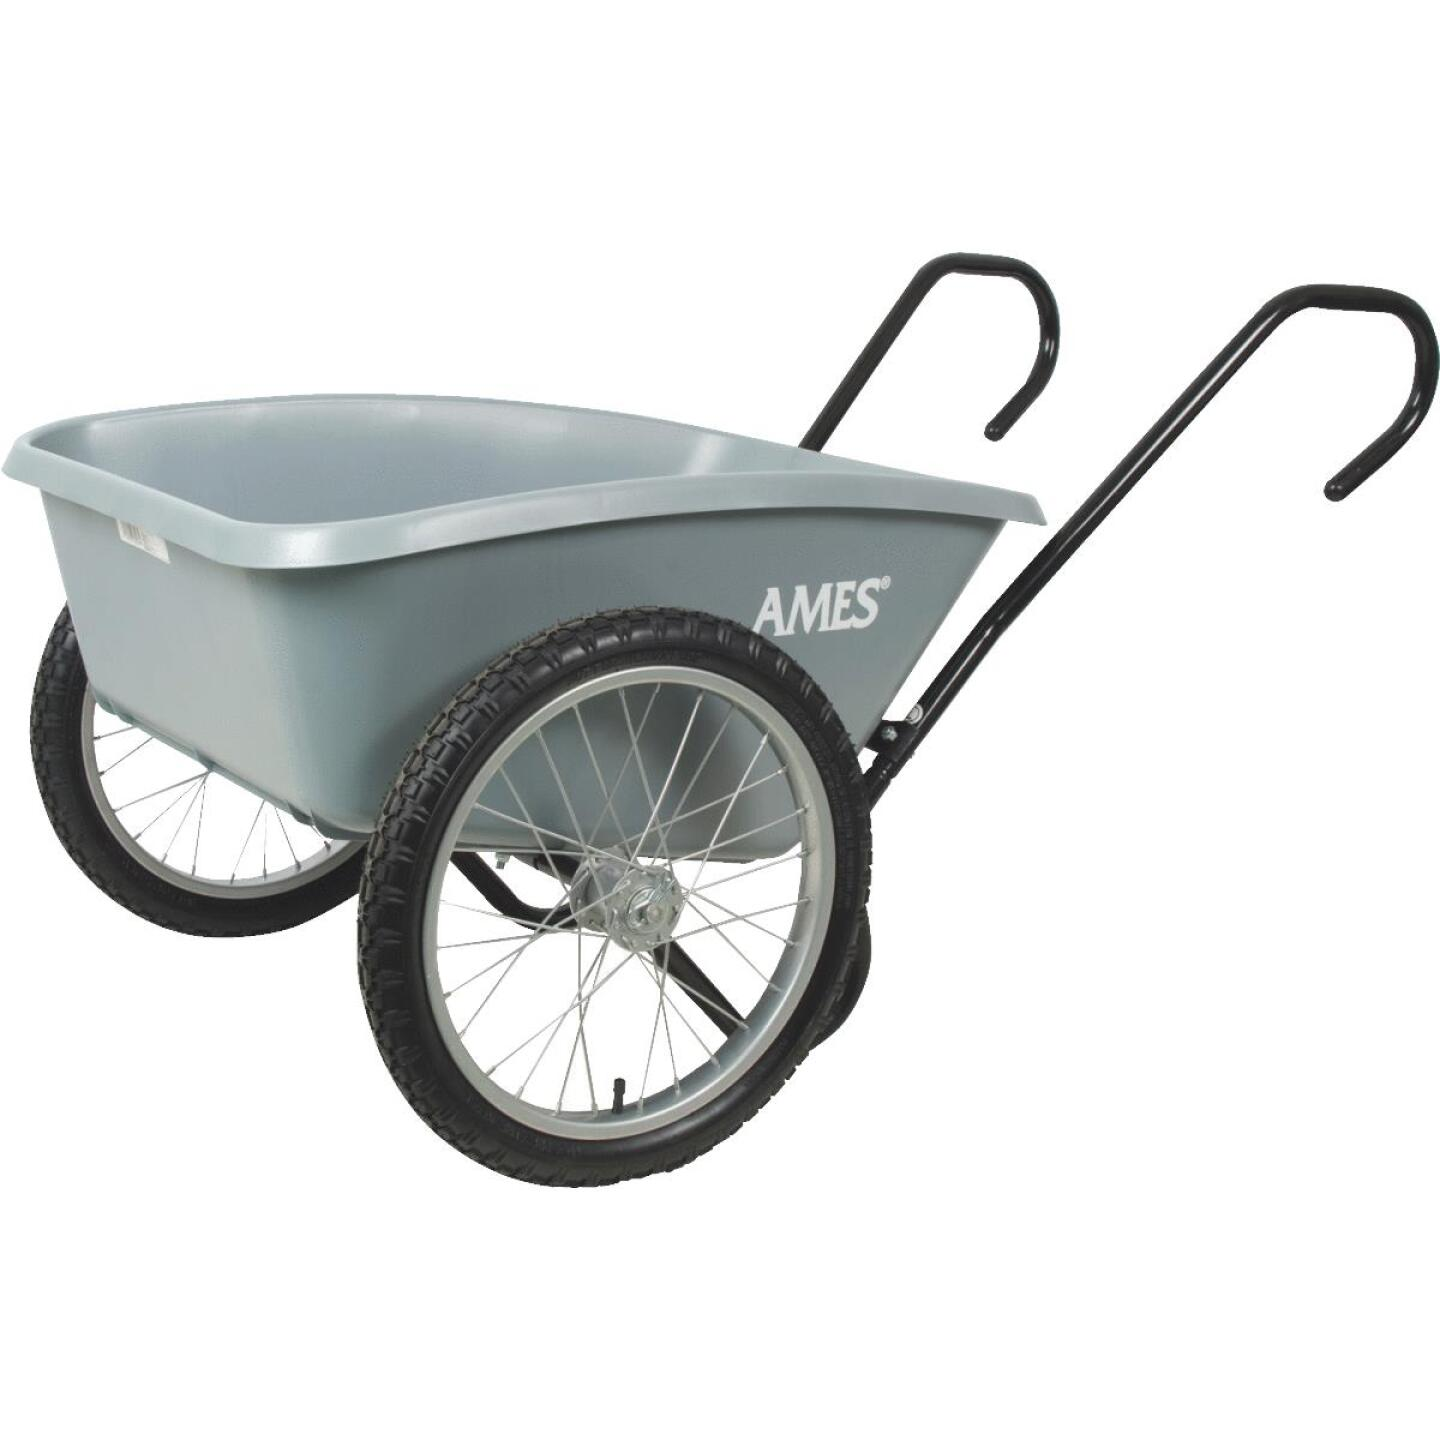 Ames 5 Cu. Ft. Poly Garden Cart Image 1